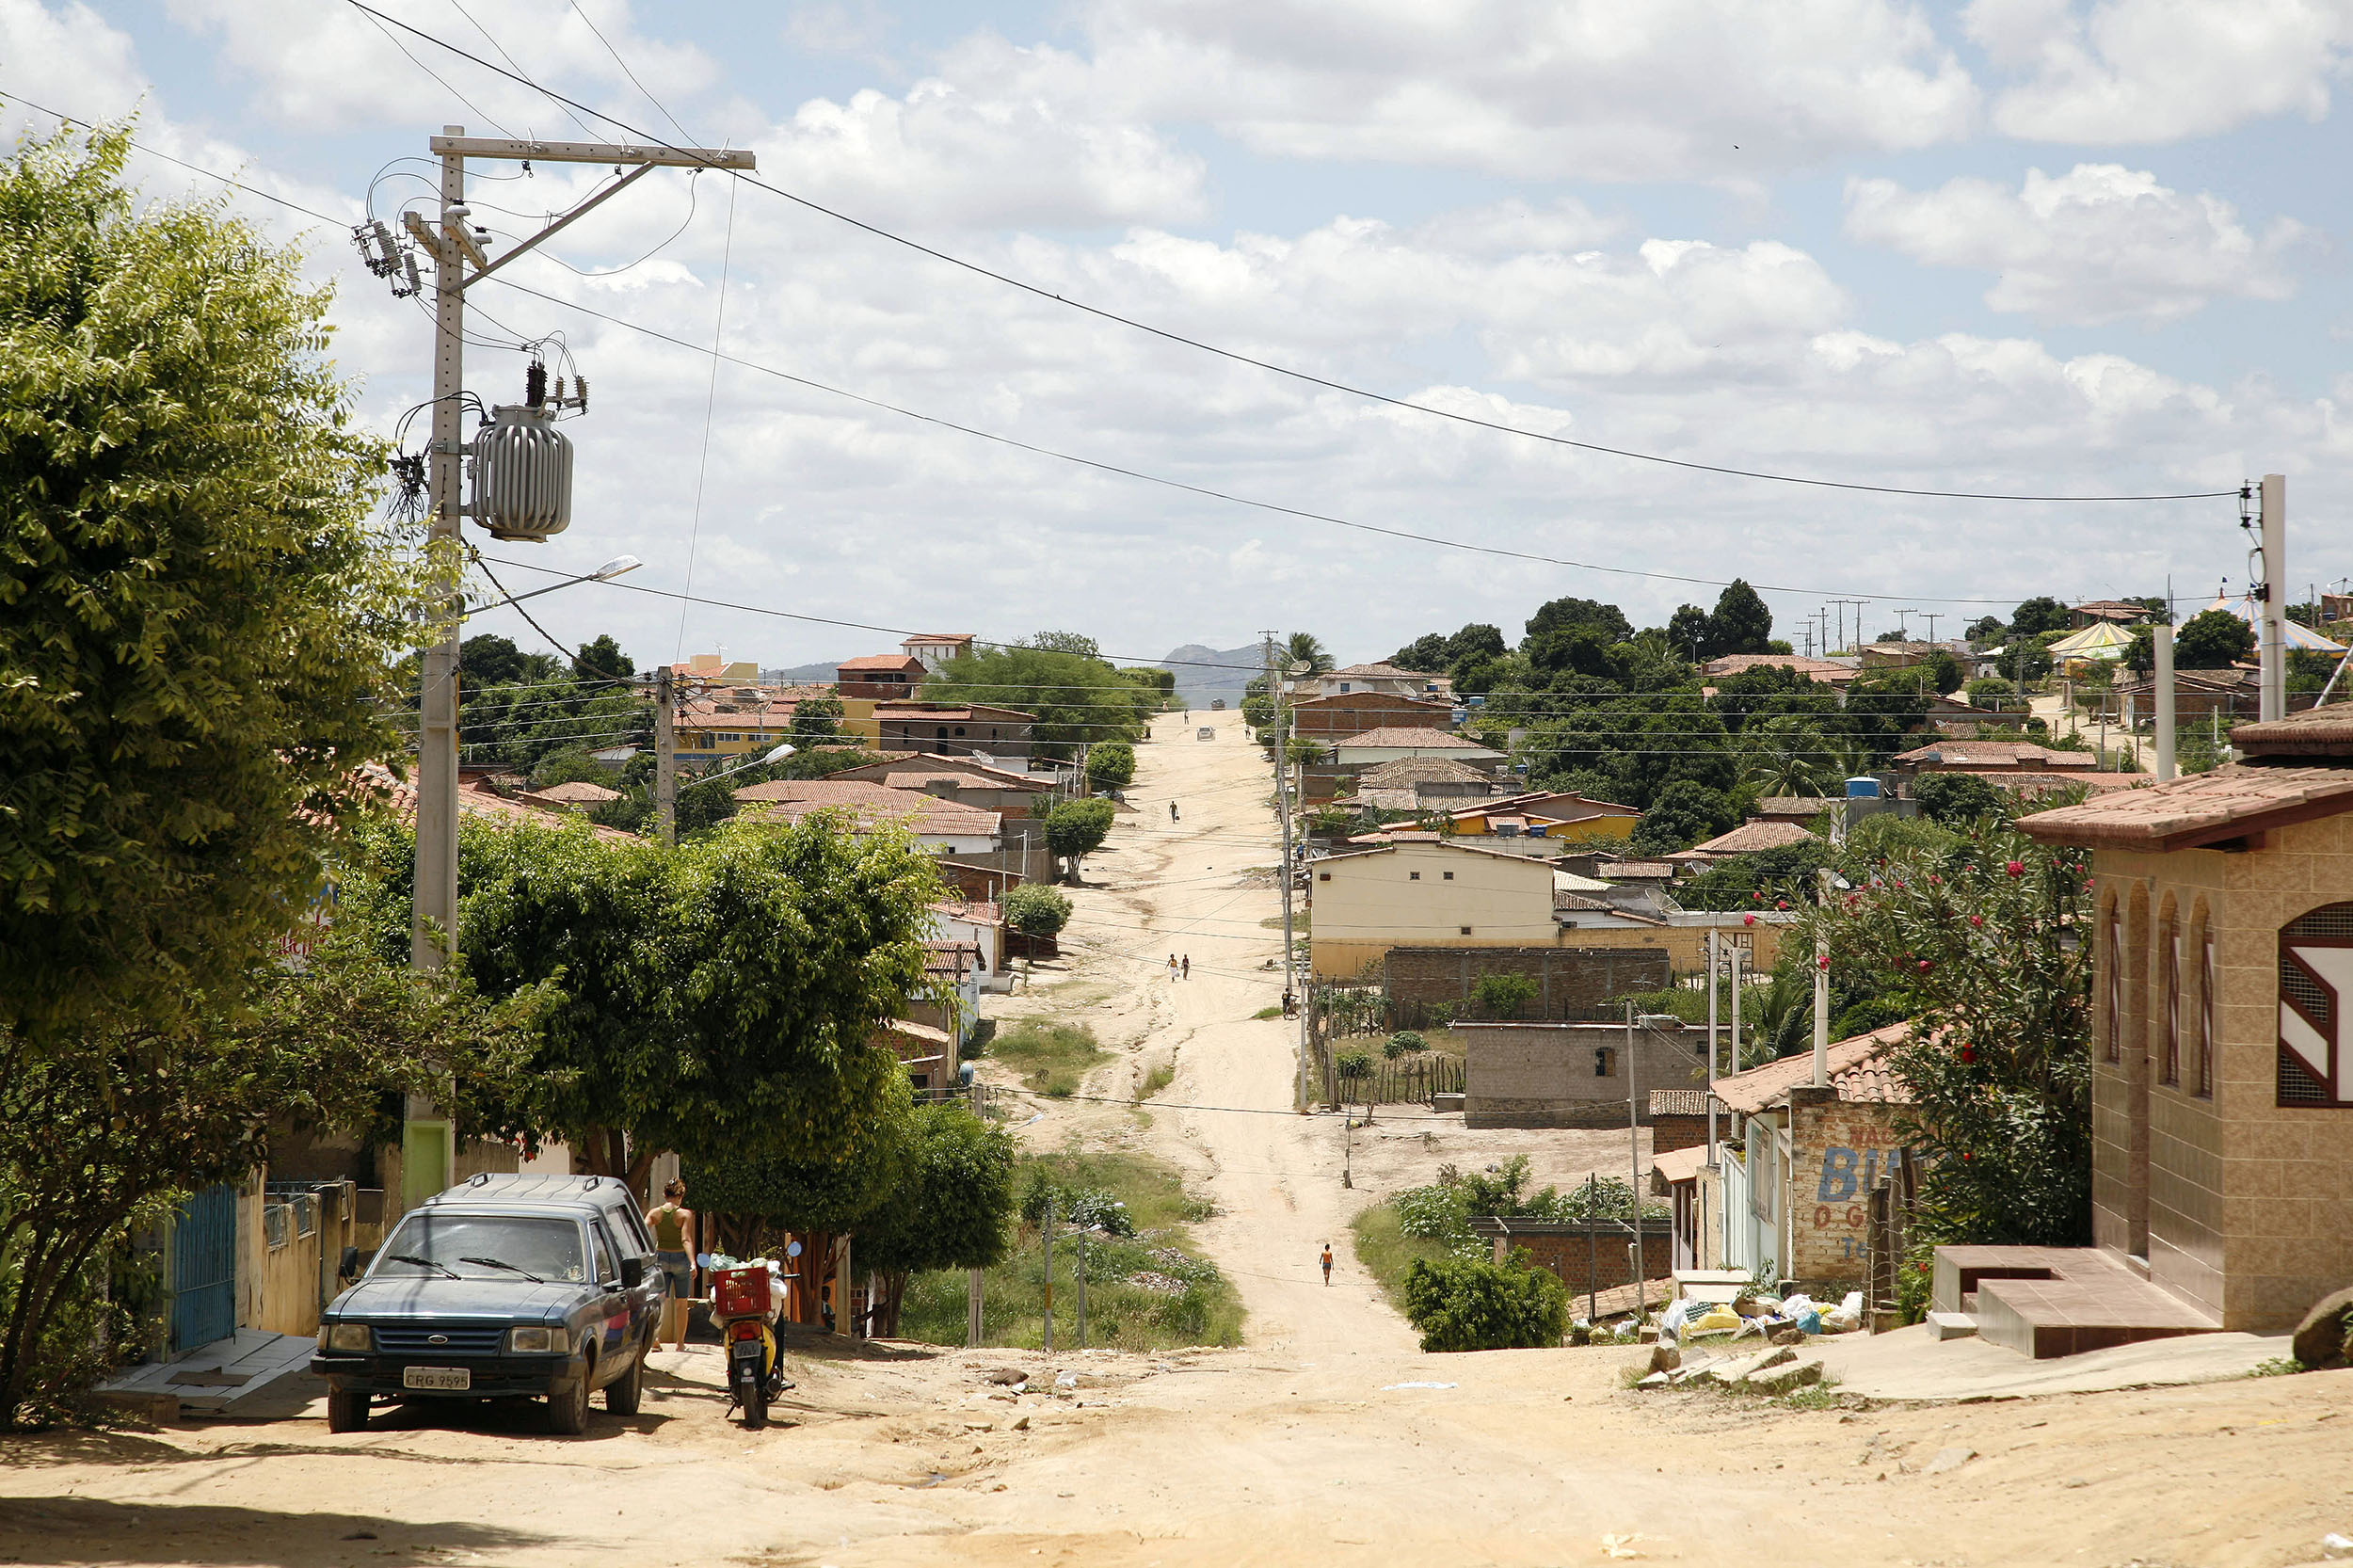 A documentary travel photograph taken from a bus in Minas Gerais, Brazil.  Photography part of personal project